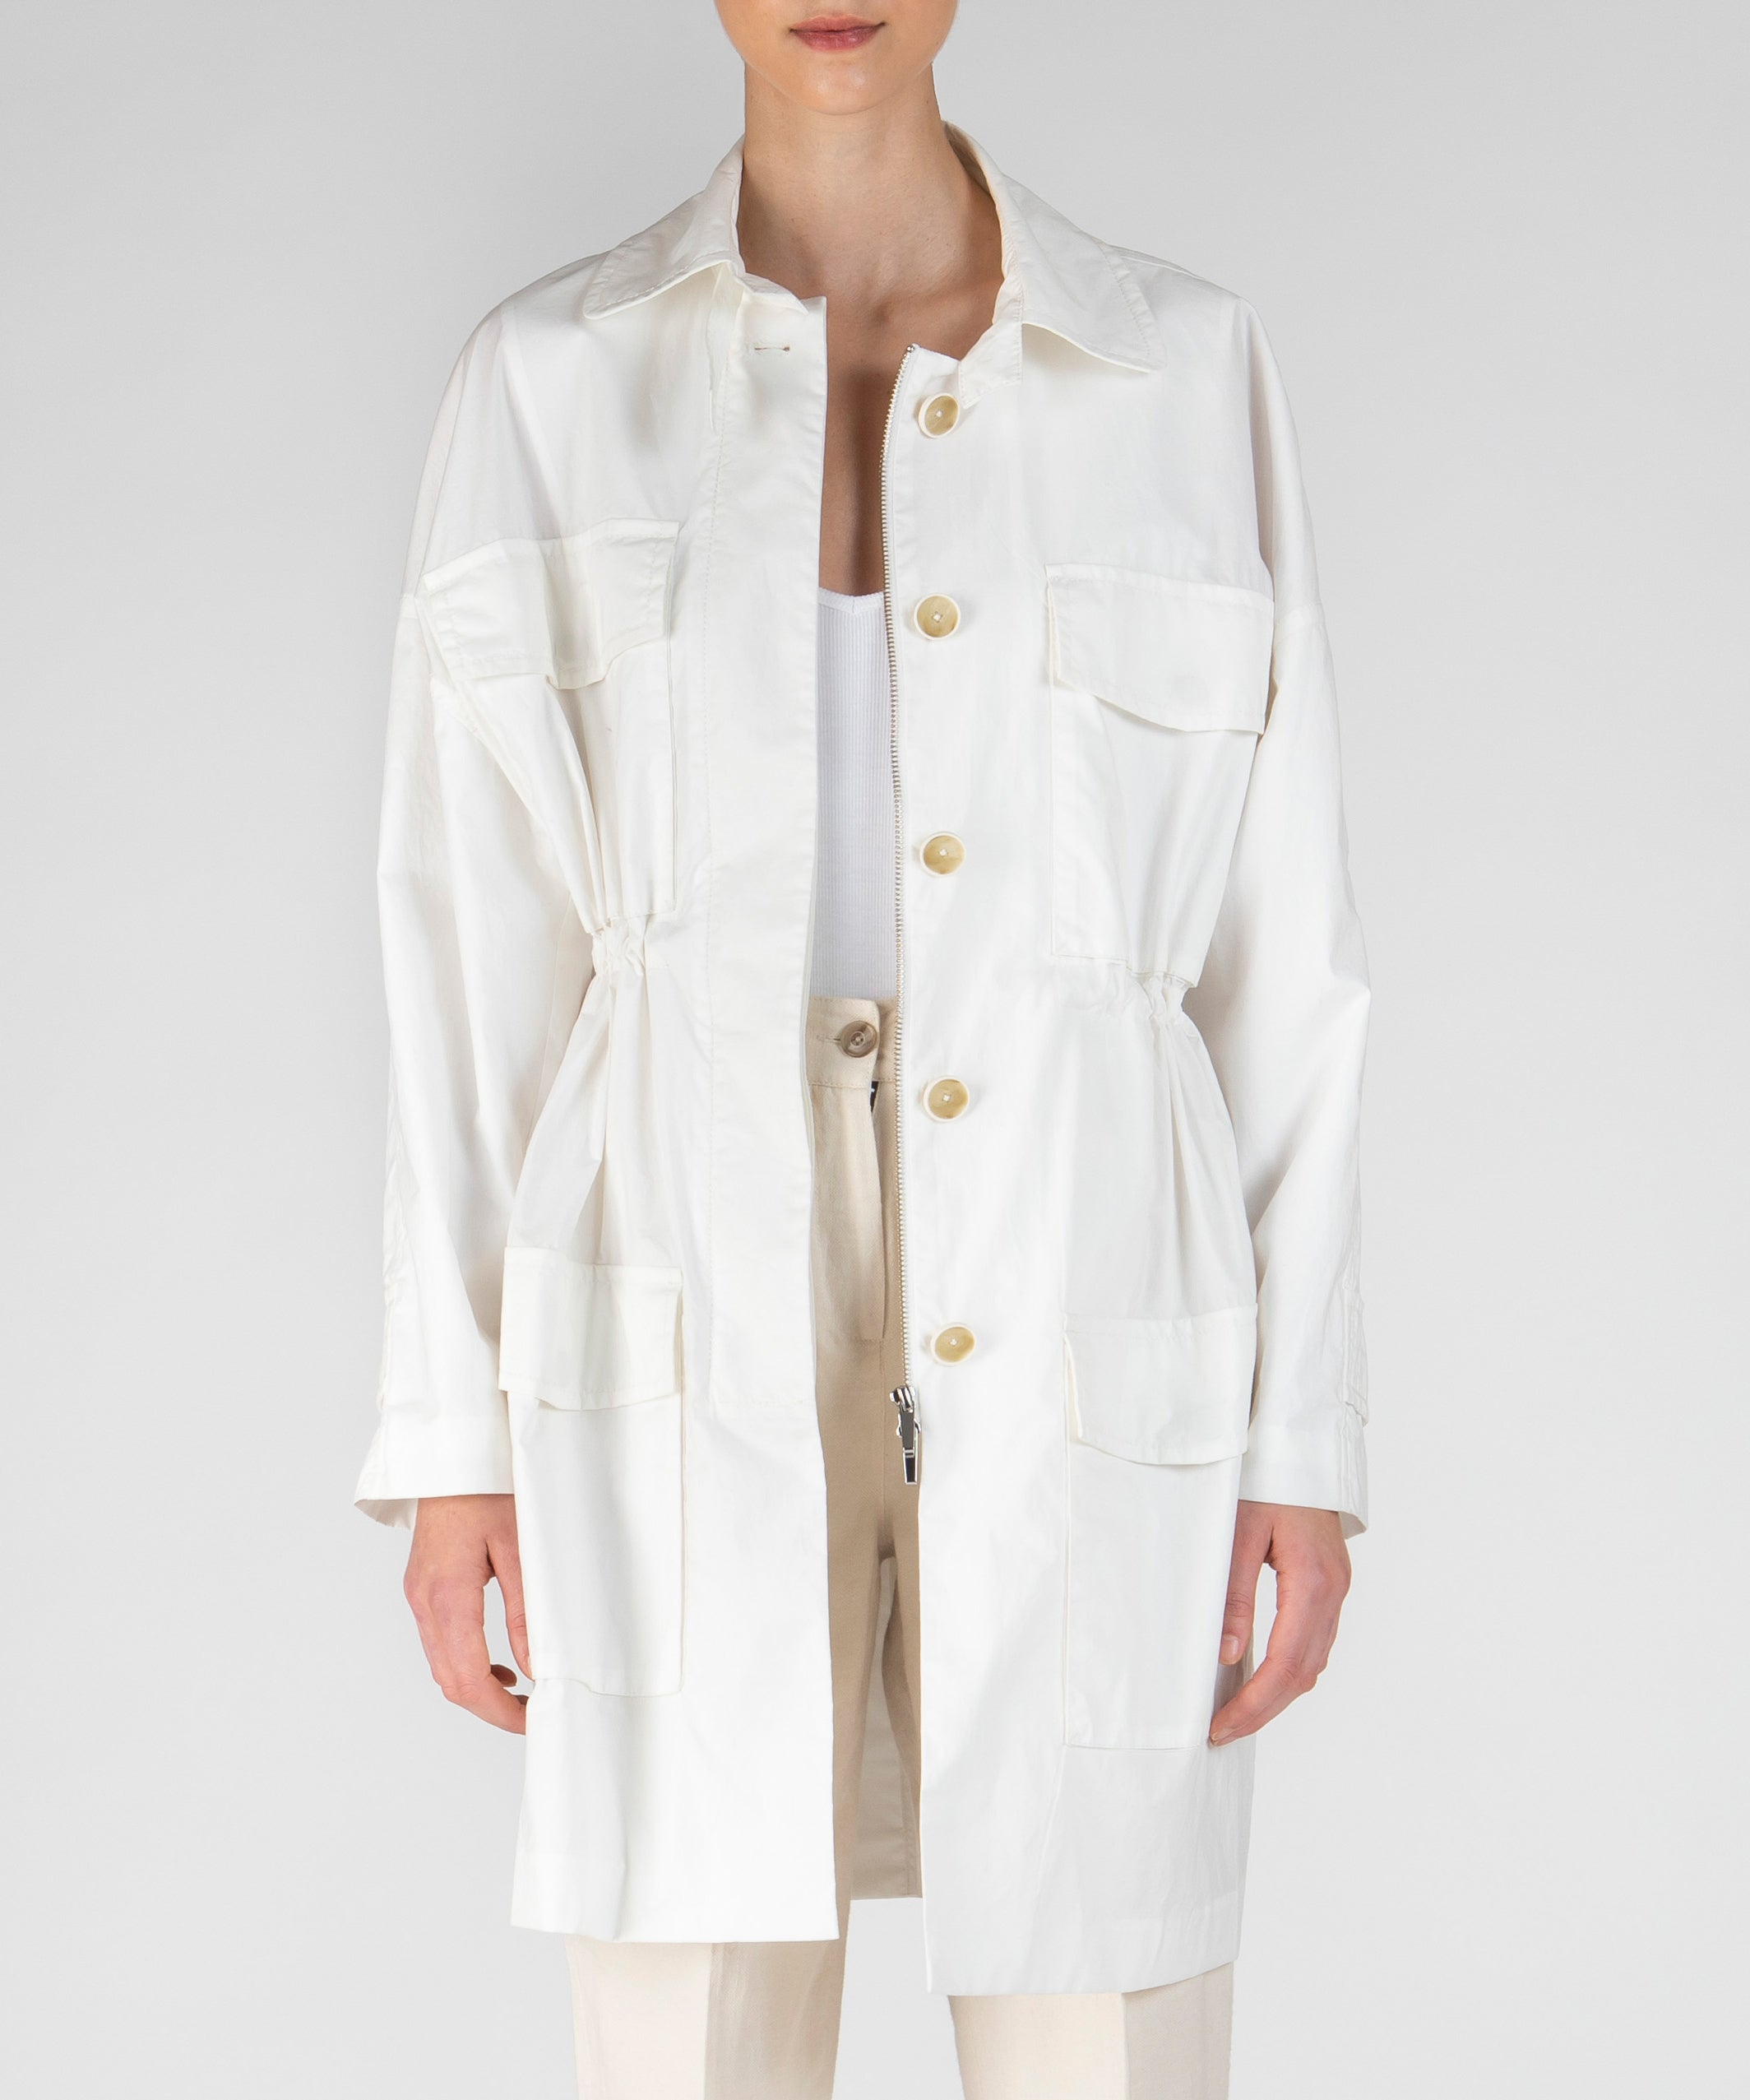 Chalk Paper Cotton Coat - Women's Casual Jacket by ATM Anthony Thomas Melillo